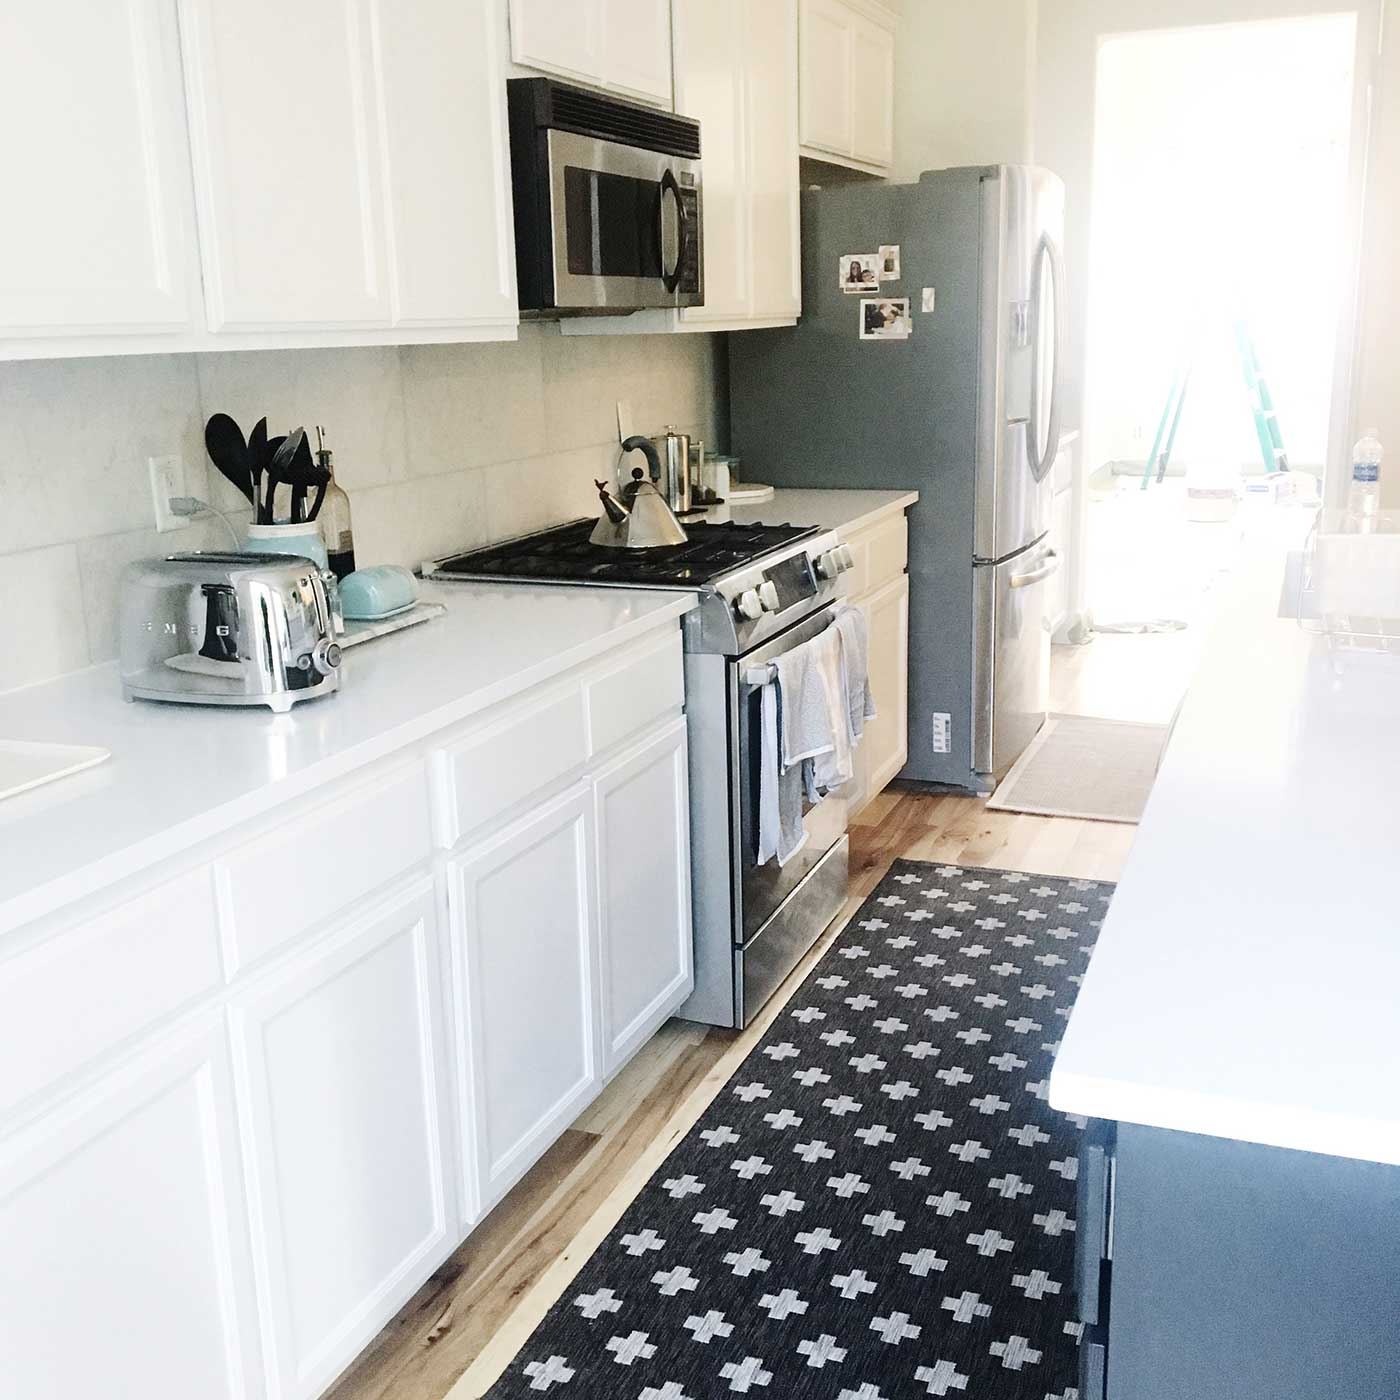 Our kitchen remodel updates - kraft&mint blog